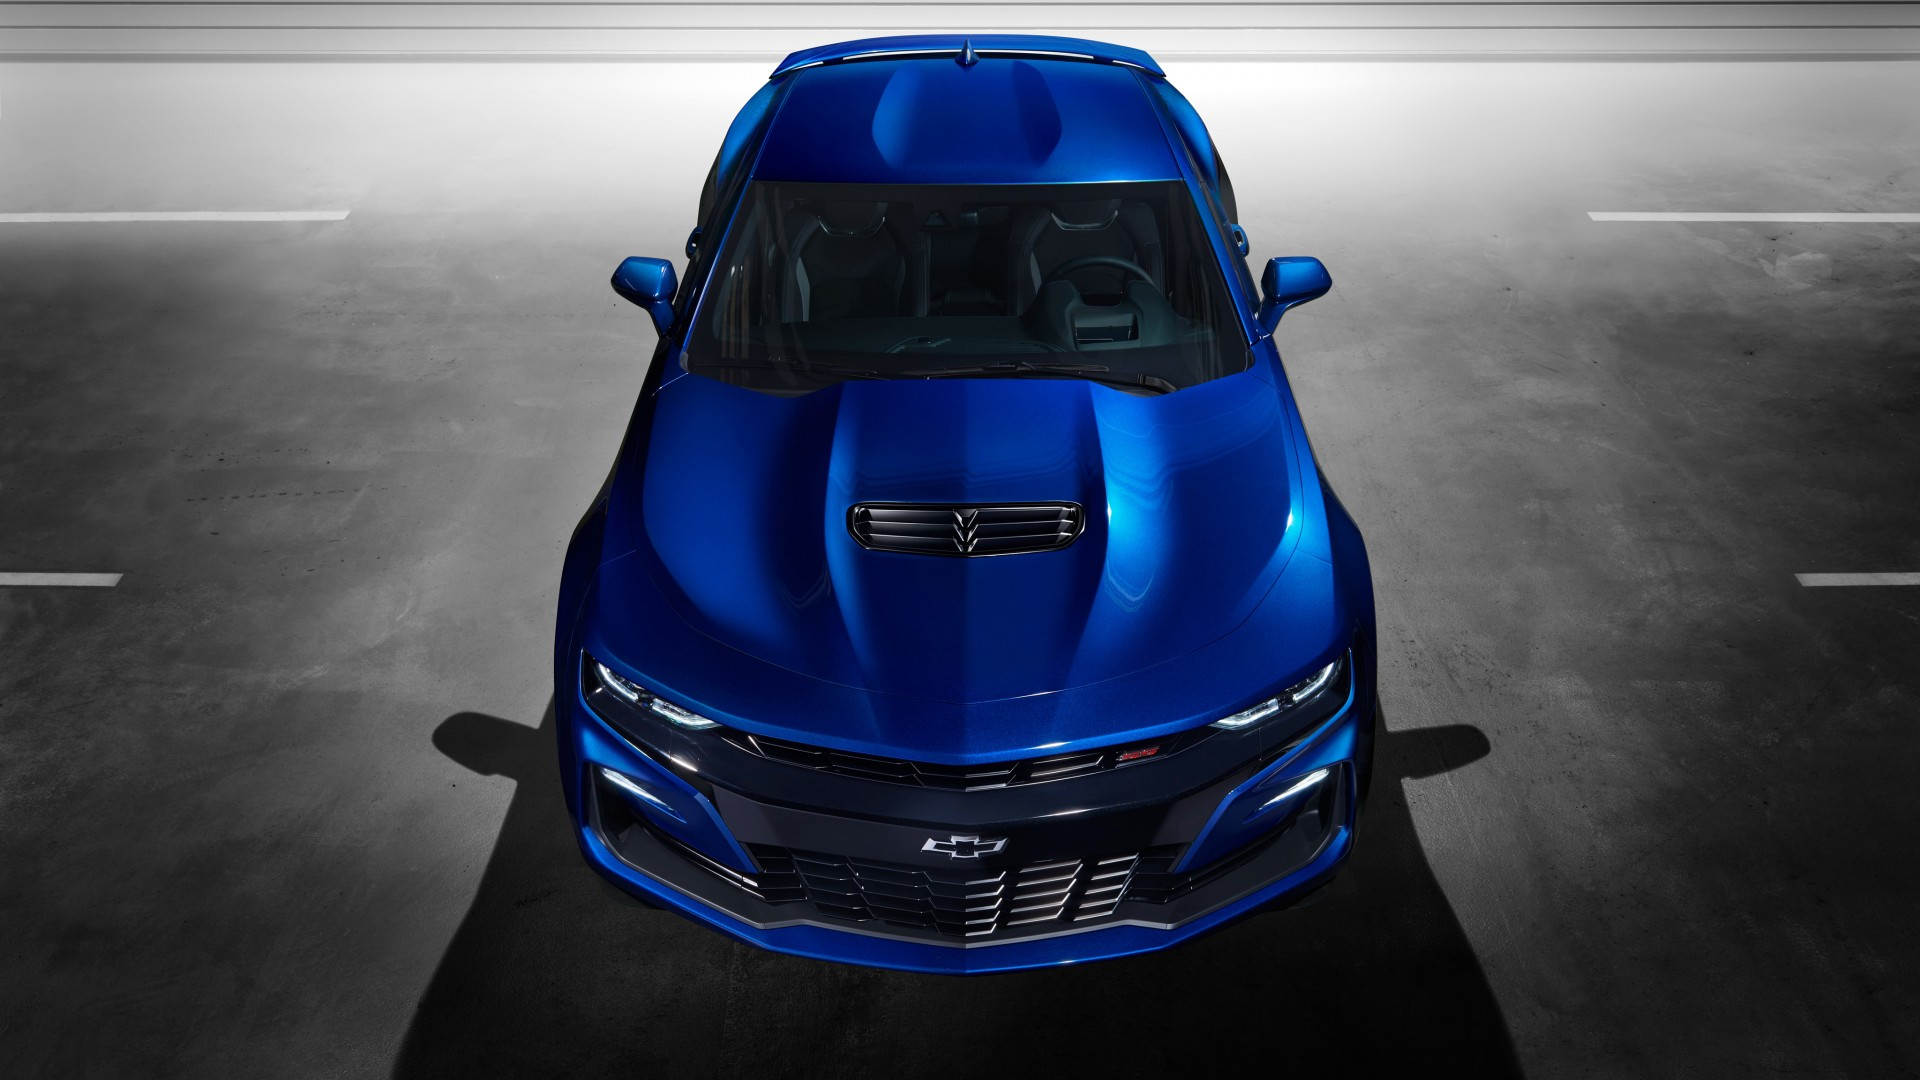 2019 Chevrolet Camaro Ss 4k Wallpaper Hd Car Wallpapers